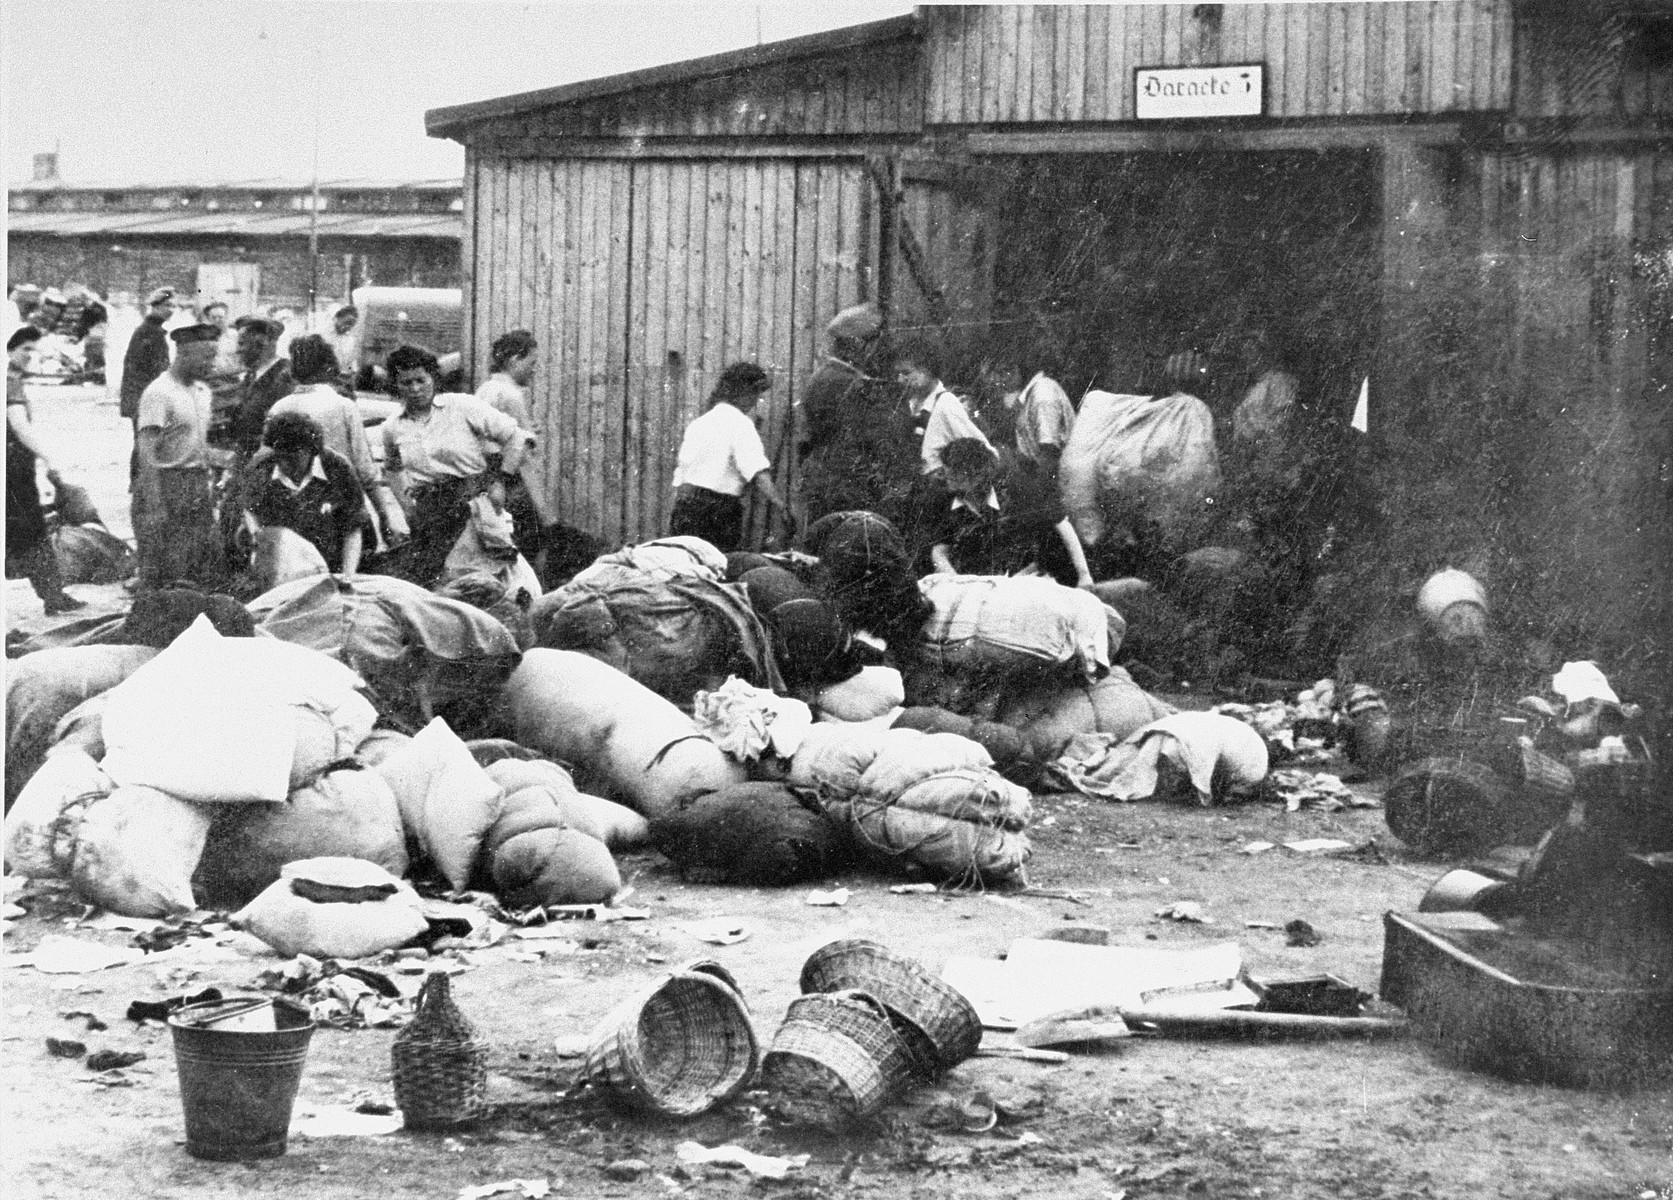 """Prisoners in the Aufräumungskommando (order commandos) move the confiscated property of a transport of Jews from Subcarpathian Rus into a warehouse in Auschwitz-Birkenau.  The camp prisoners came to refer to the looted property as """"Kanada,"""" associating it with the riches symbolized by Kanada.  The members of this commando were almost exclusively Jews.  """"Kanada"""" storage facilities occupied several dozen barracks and other buildings around the camp.  The looted property was funneled from Auschwitz through an extensive distribution network that served many individuals and various economic branches of the Third Reich."""